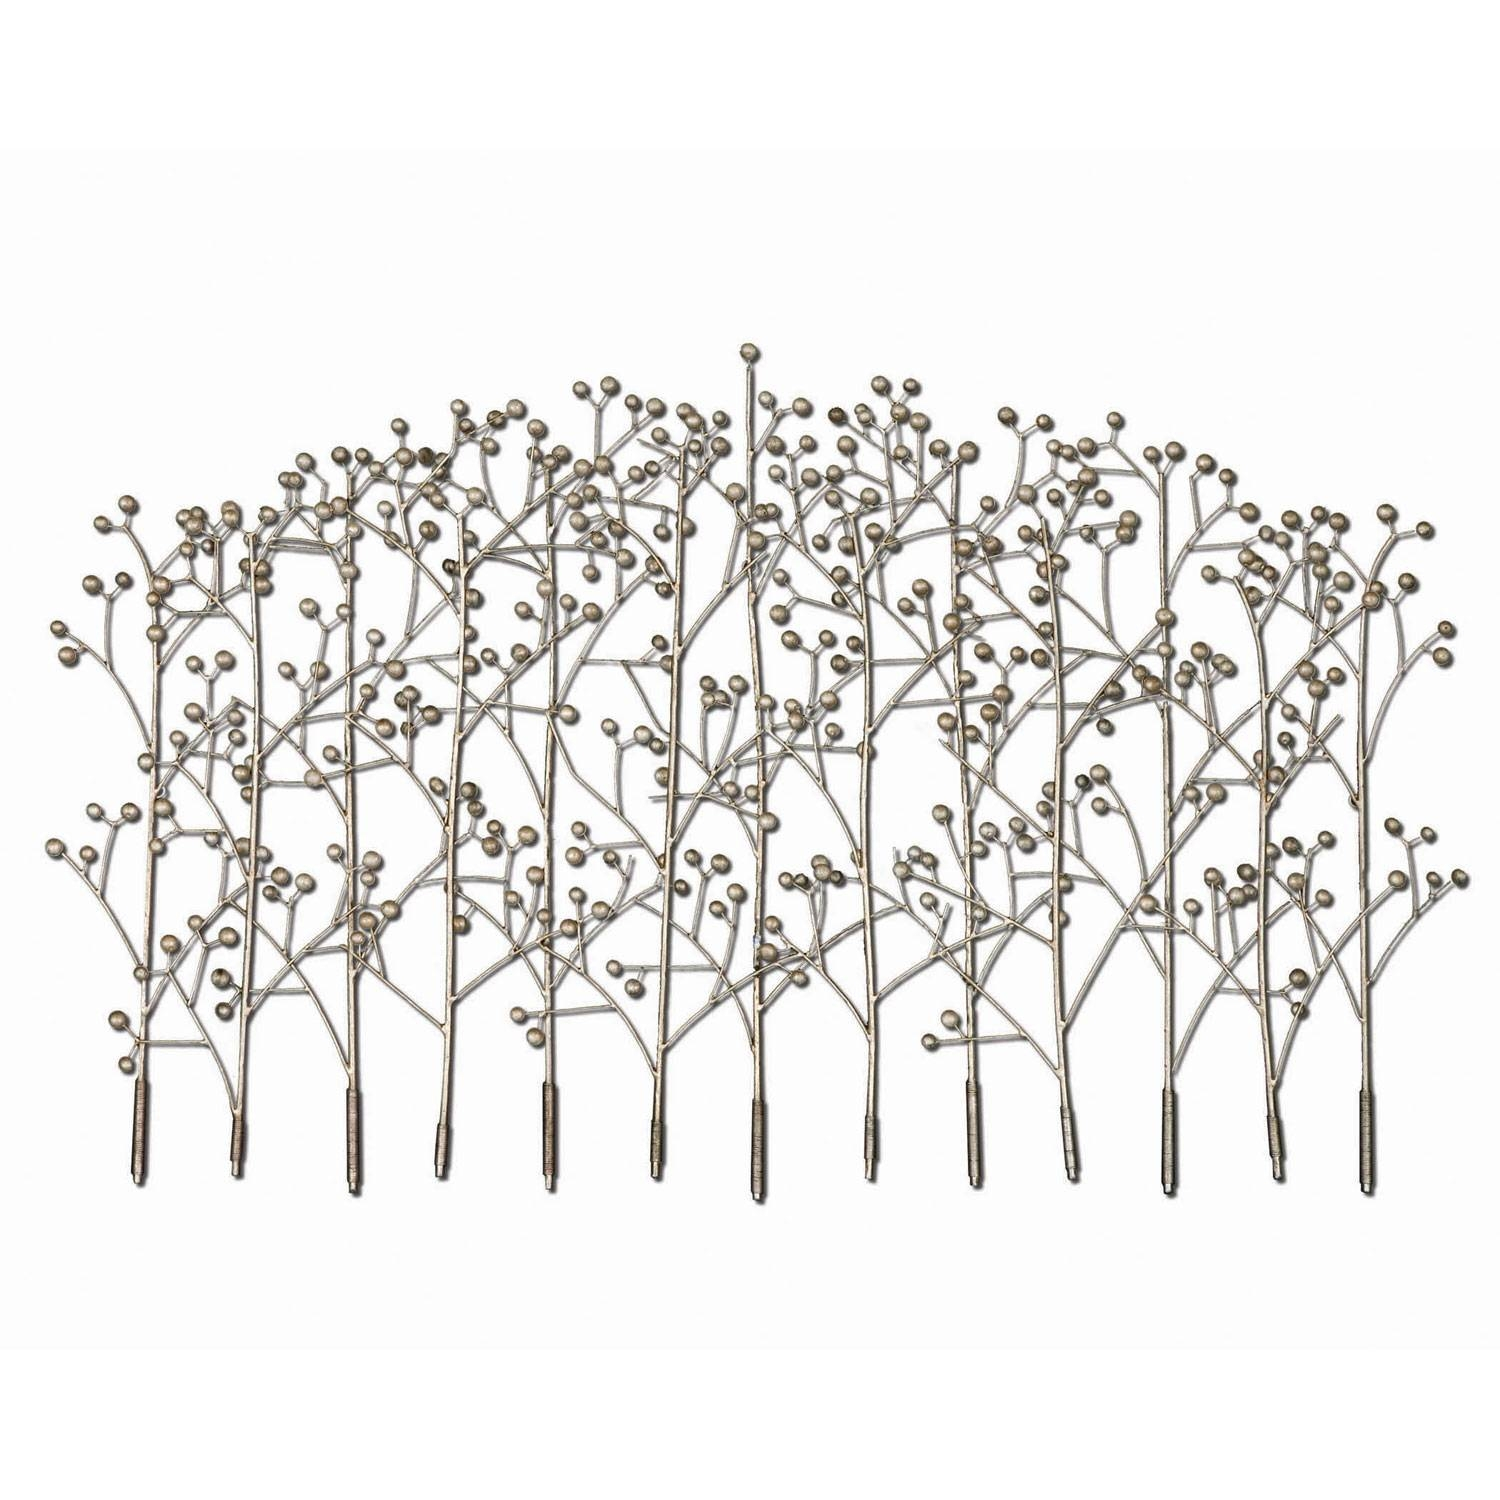 Iron Trees Metal Wall Art Uttermost Wall Sculpture Wall Decor Home Intended For Most Up To Date Uttermost Metal Wall Art (View 4 of 20)